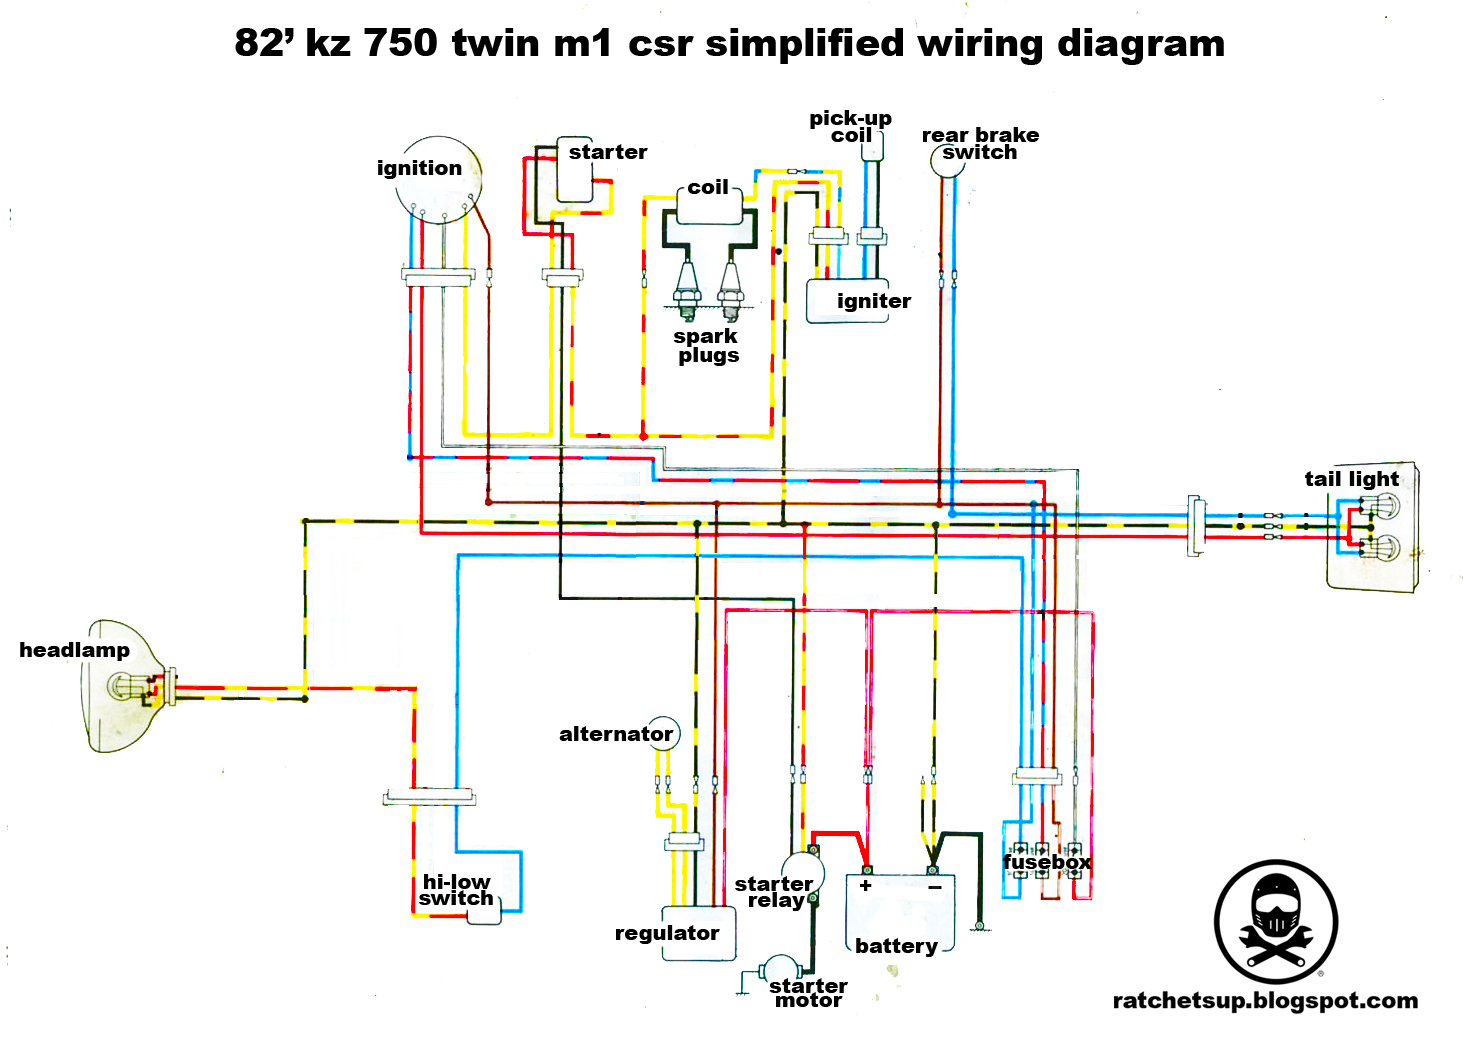 kz750+simple+diagram simplified minimal kz750 csr wiring diagram kzrider forum 1981 kawasaki kz750 wiring harness at readyjetset.co